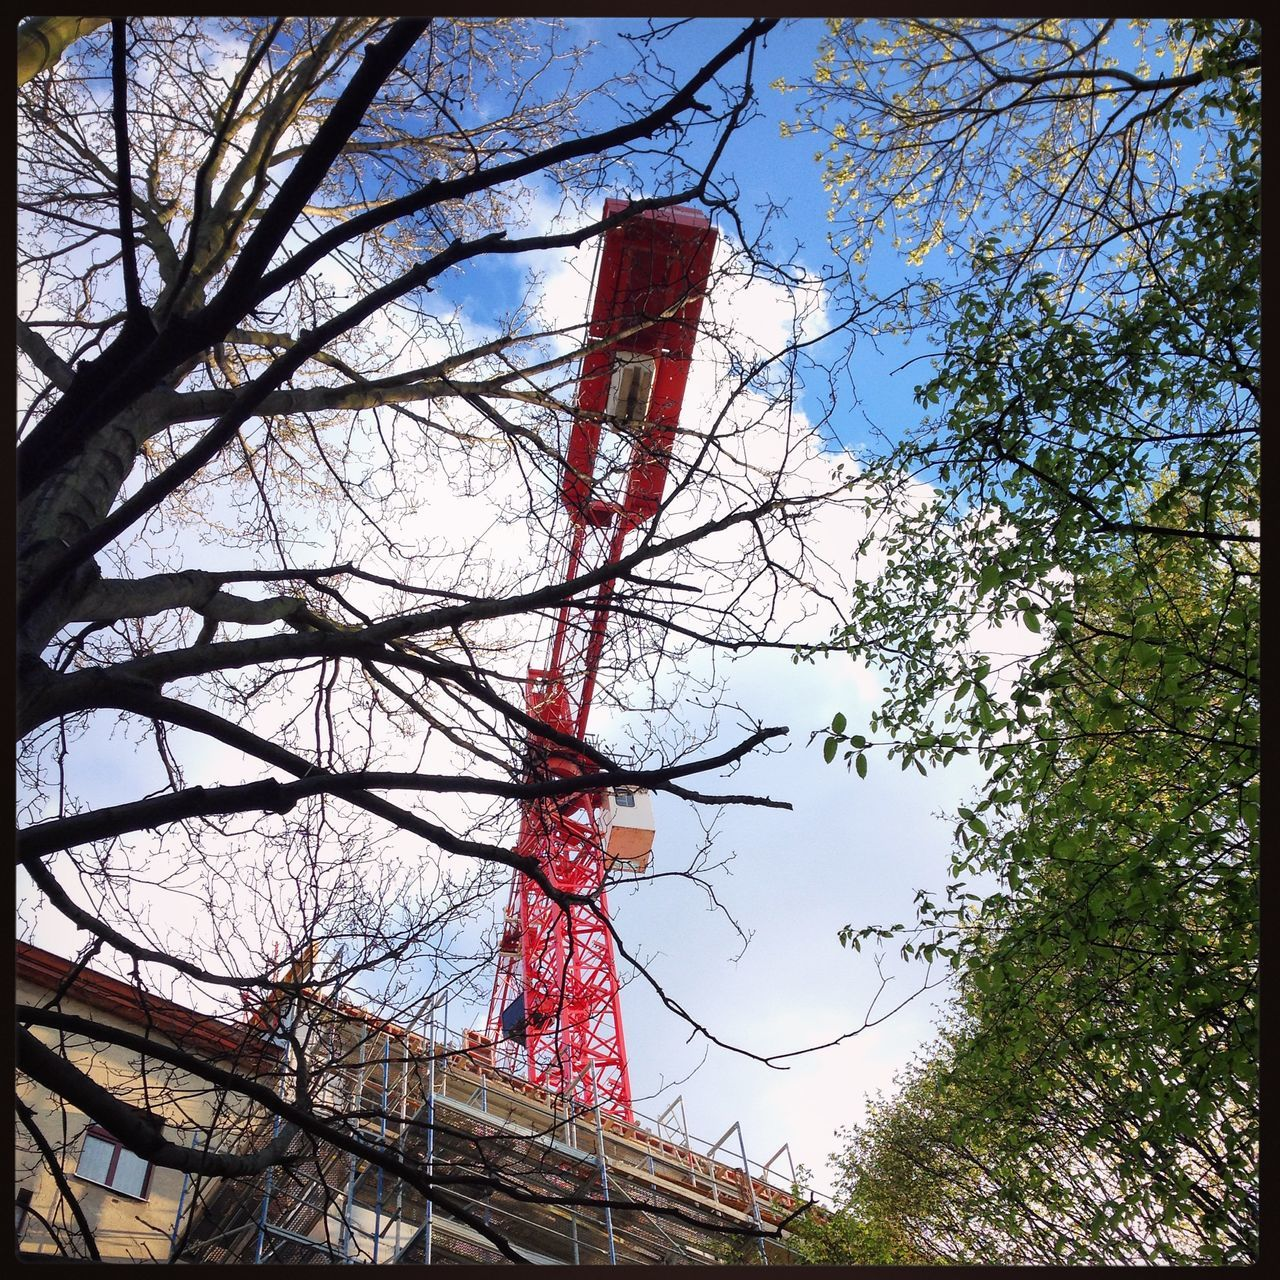 Architecture Bare Tree Baugruppe Blue Sky Branch Clouds And Sky Connection Construction Construction Site Crane Day Kreuzberg Low Angle View No People Outdoors Red Crane Sky Tree Tree